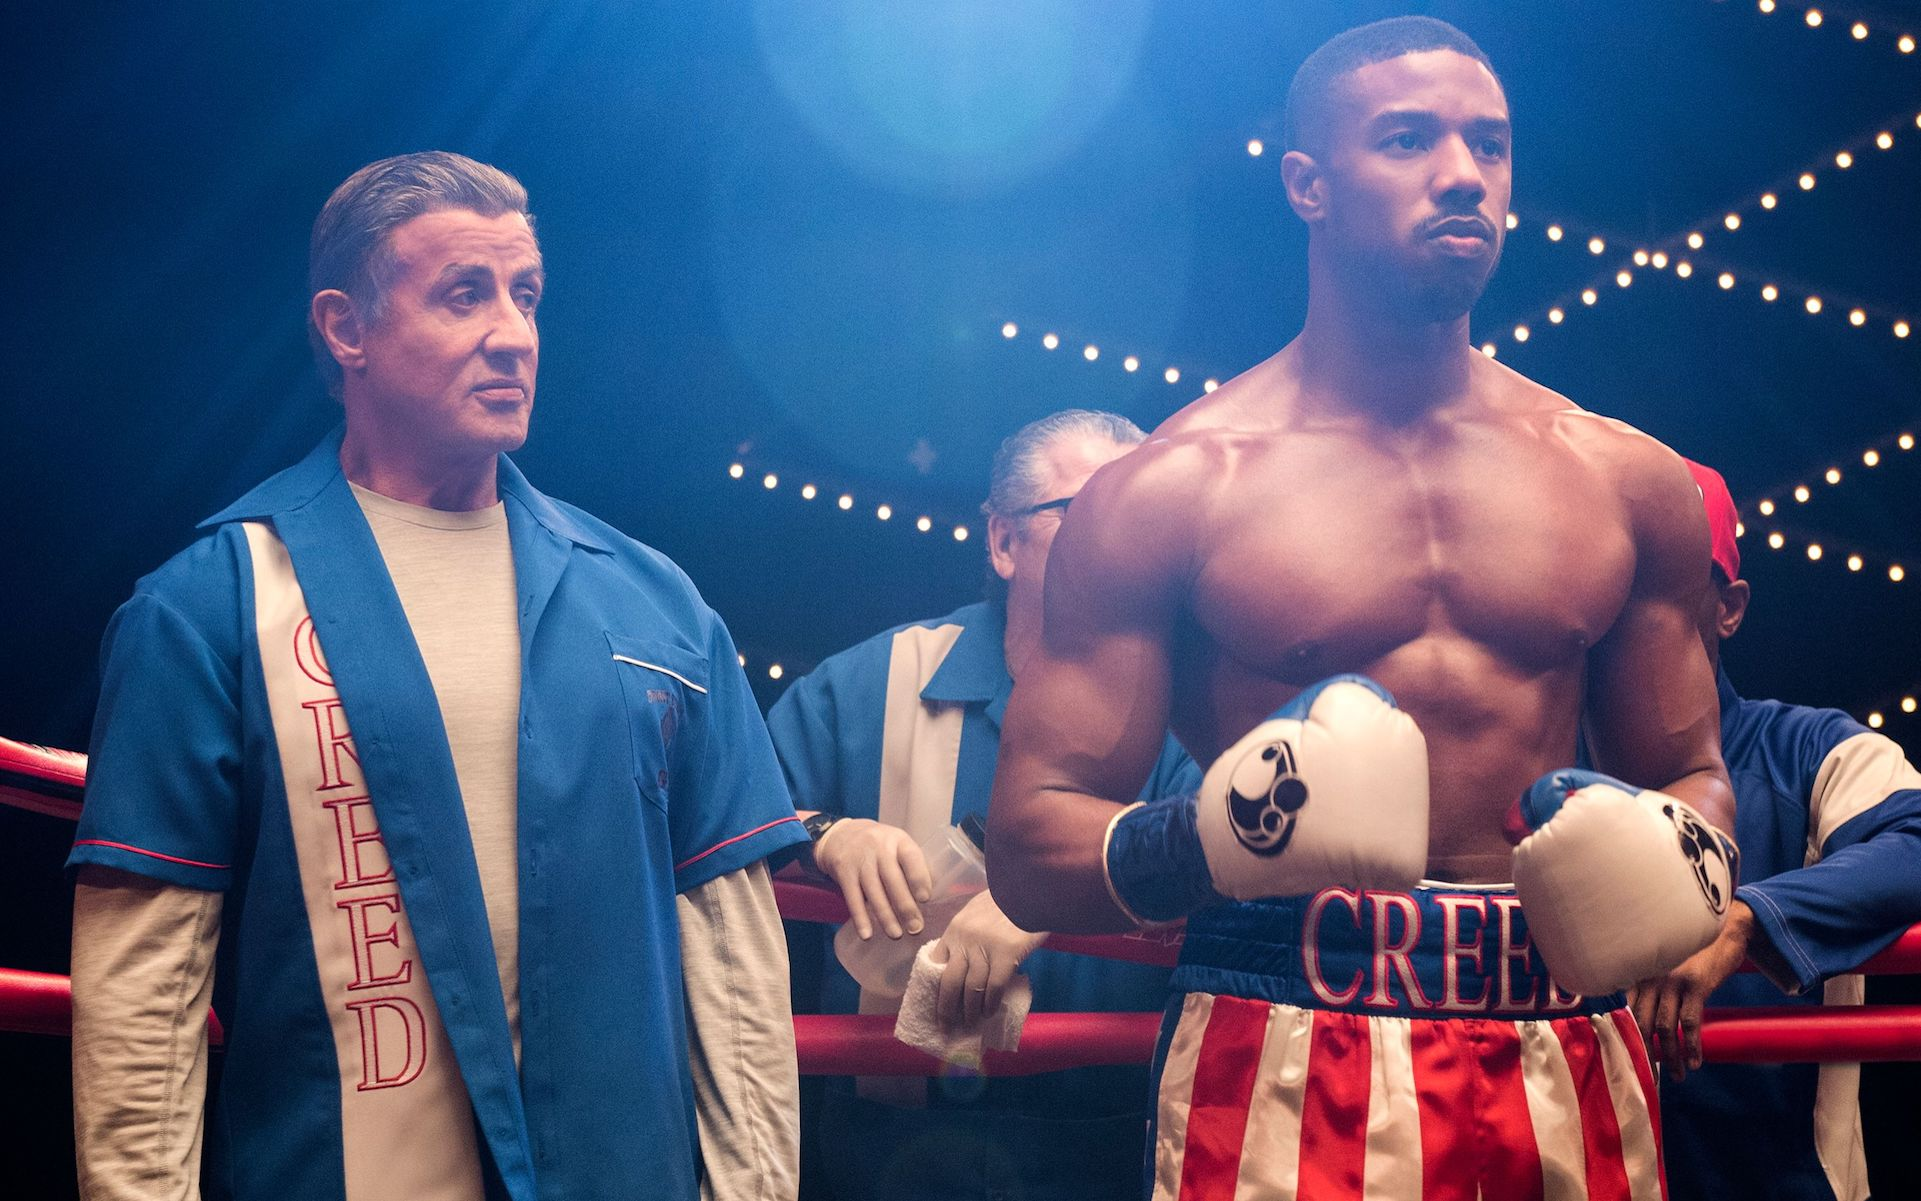 Creed 2 promises to be silly beefcake fun on a belly full of stuffing.